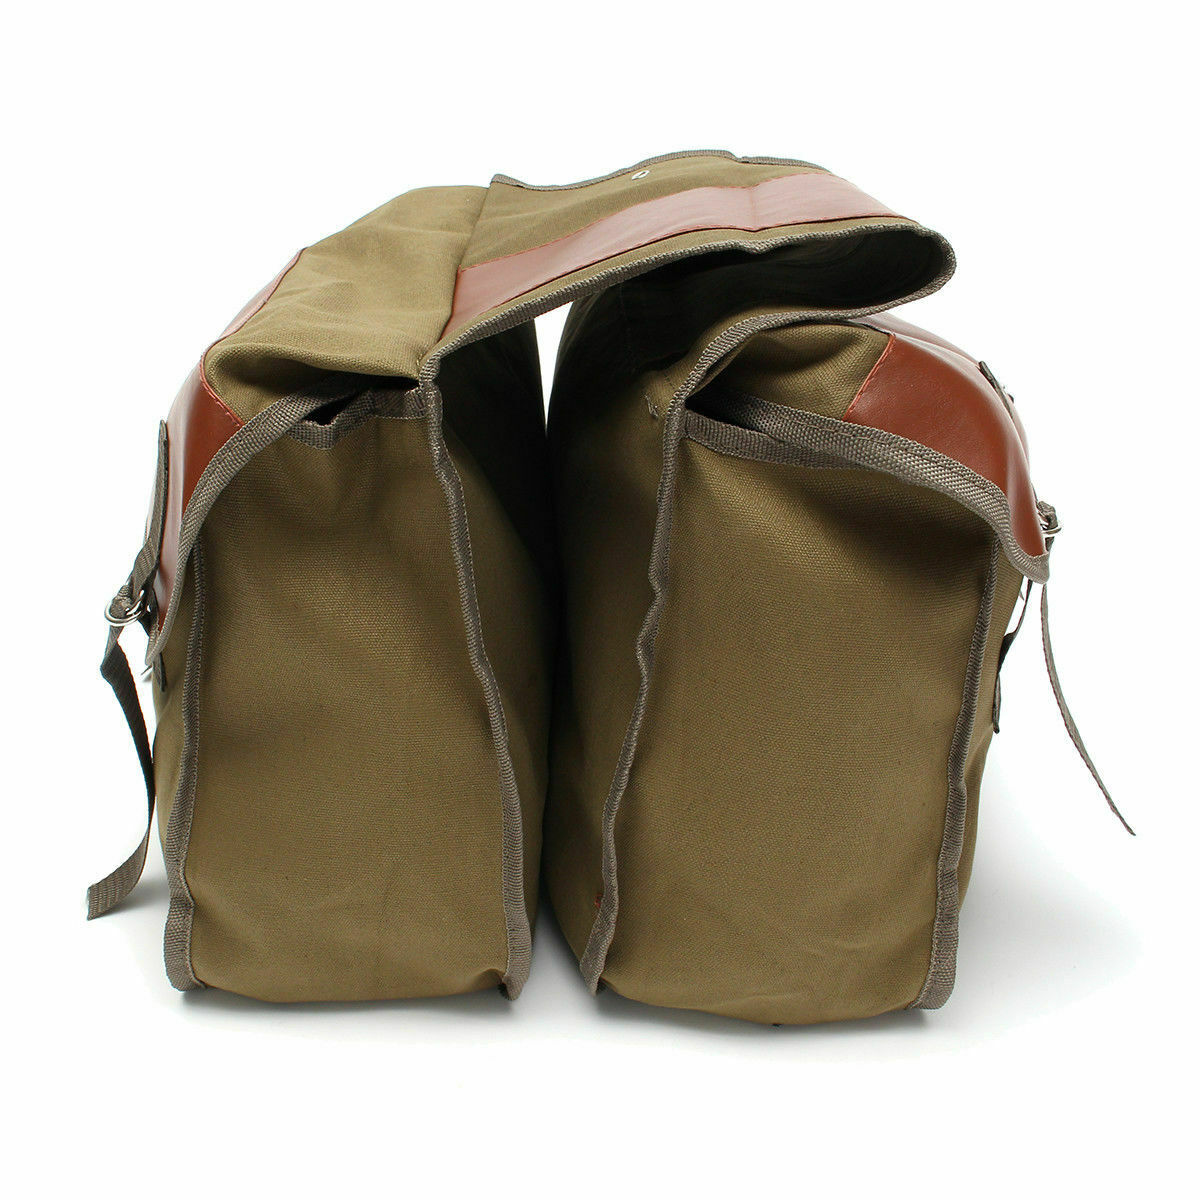 Motorcycle Bags Saddlebag Luggage Bags Travel Knight Rider For Touring For Triumph Bonneville For Honda shadow enlarge